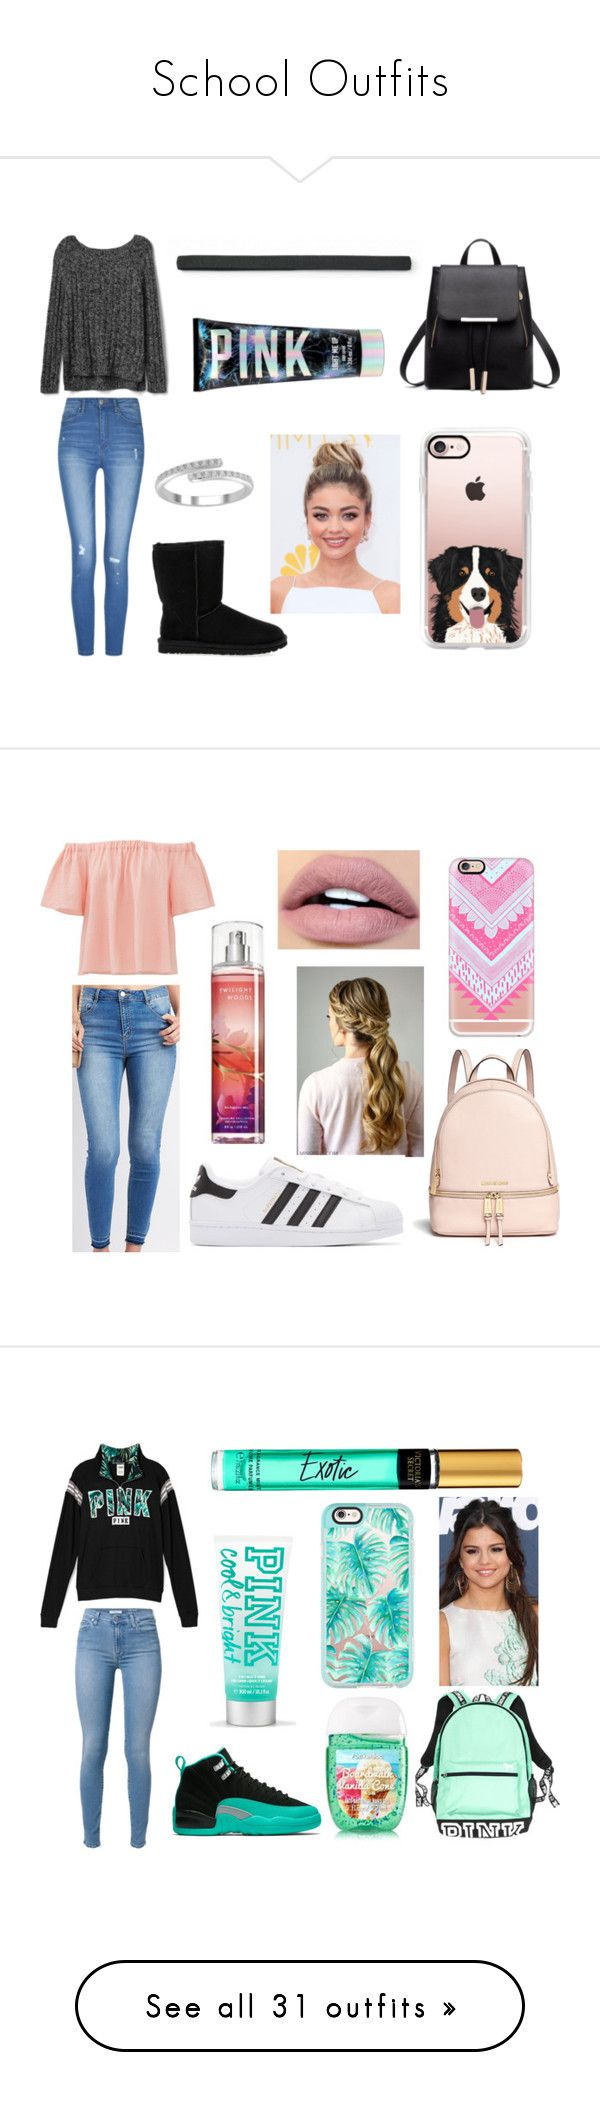 """School Outfits"" by basketballislife11 ❤ liked on Polyvore featuring Gap, UGG Australia, Casetify, SO, Victoria's Secret, Rebecca Taylor, Refuge, Michael Kors, adidas Originals and ColourPop"